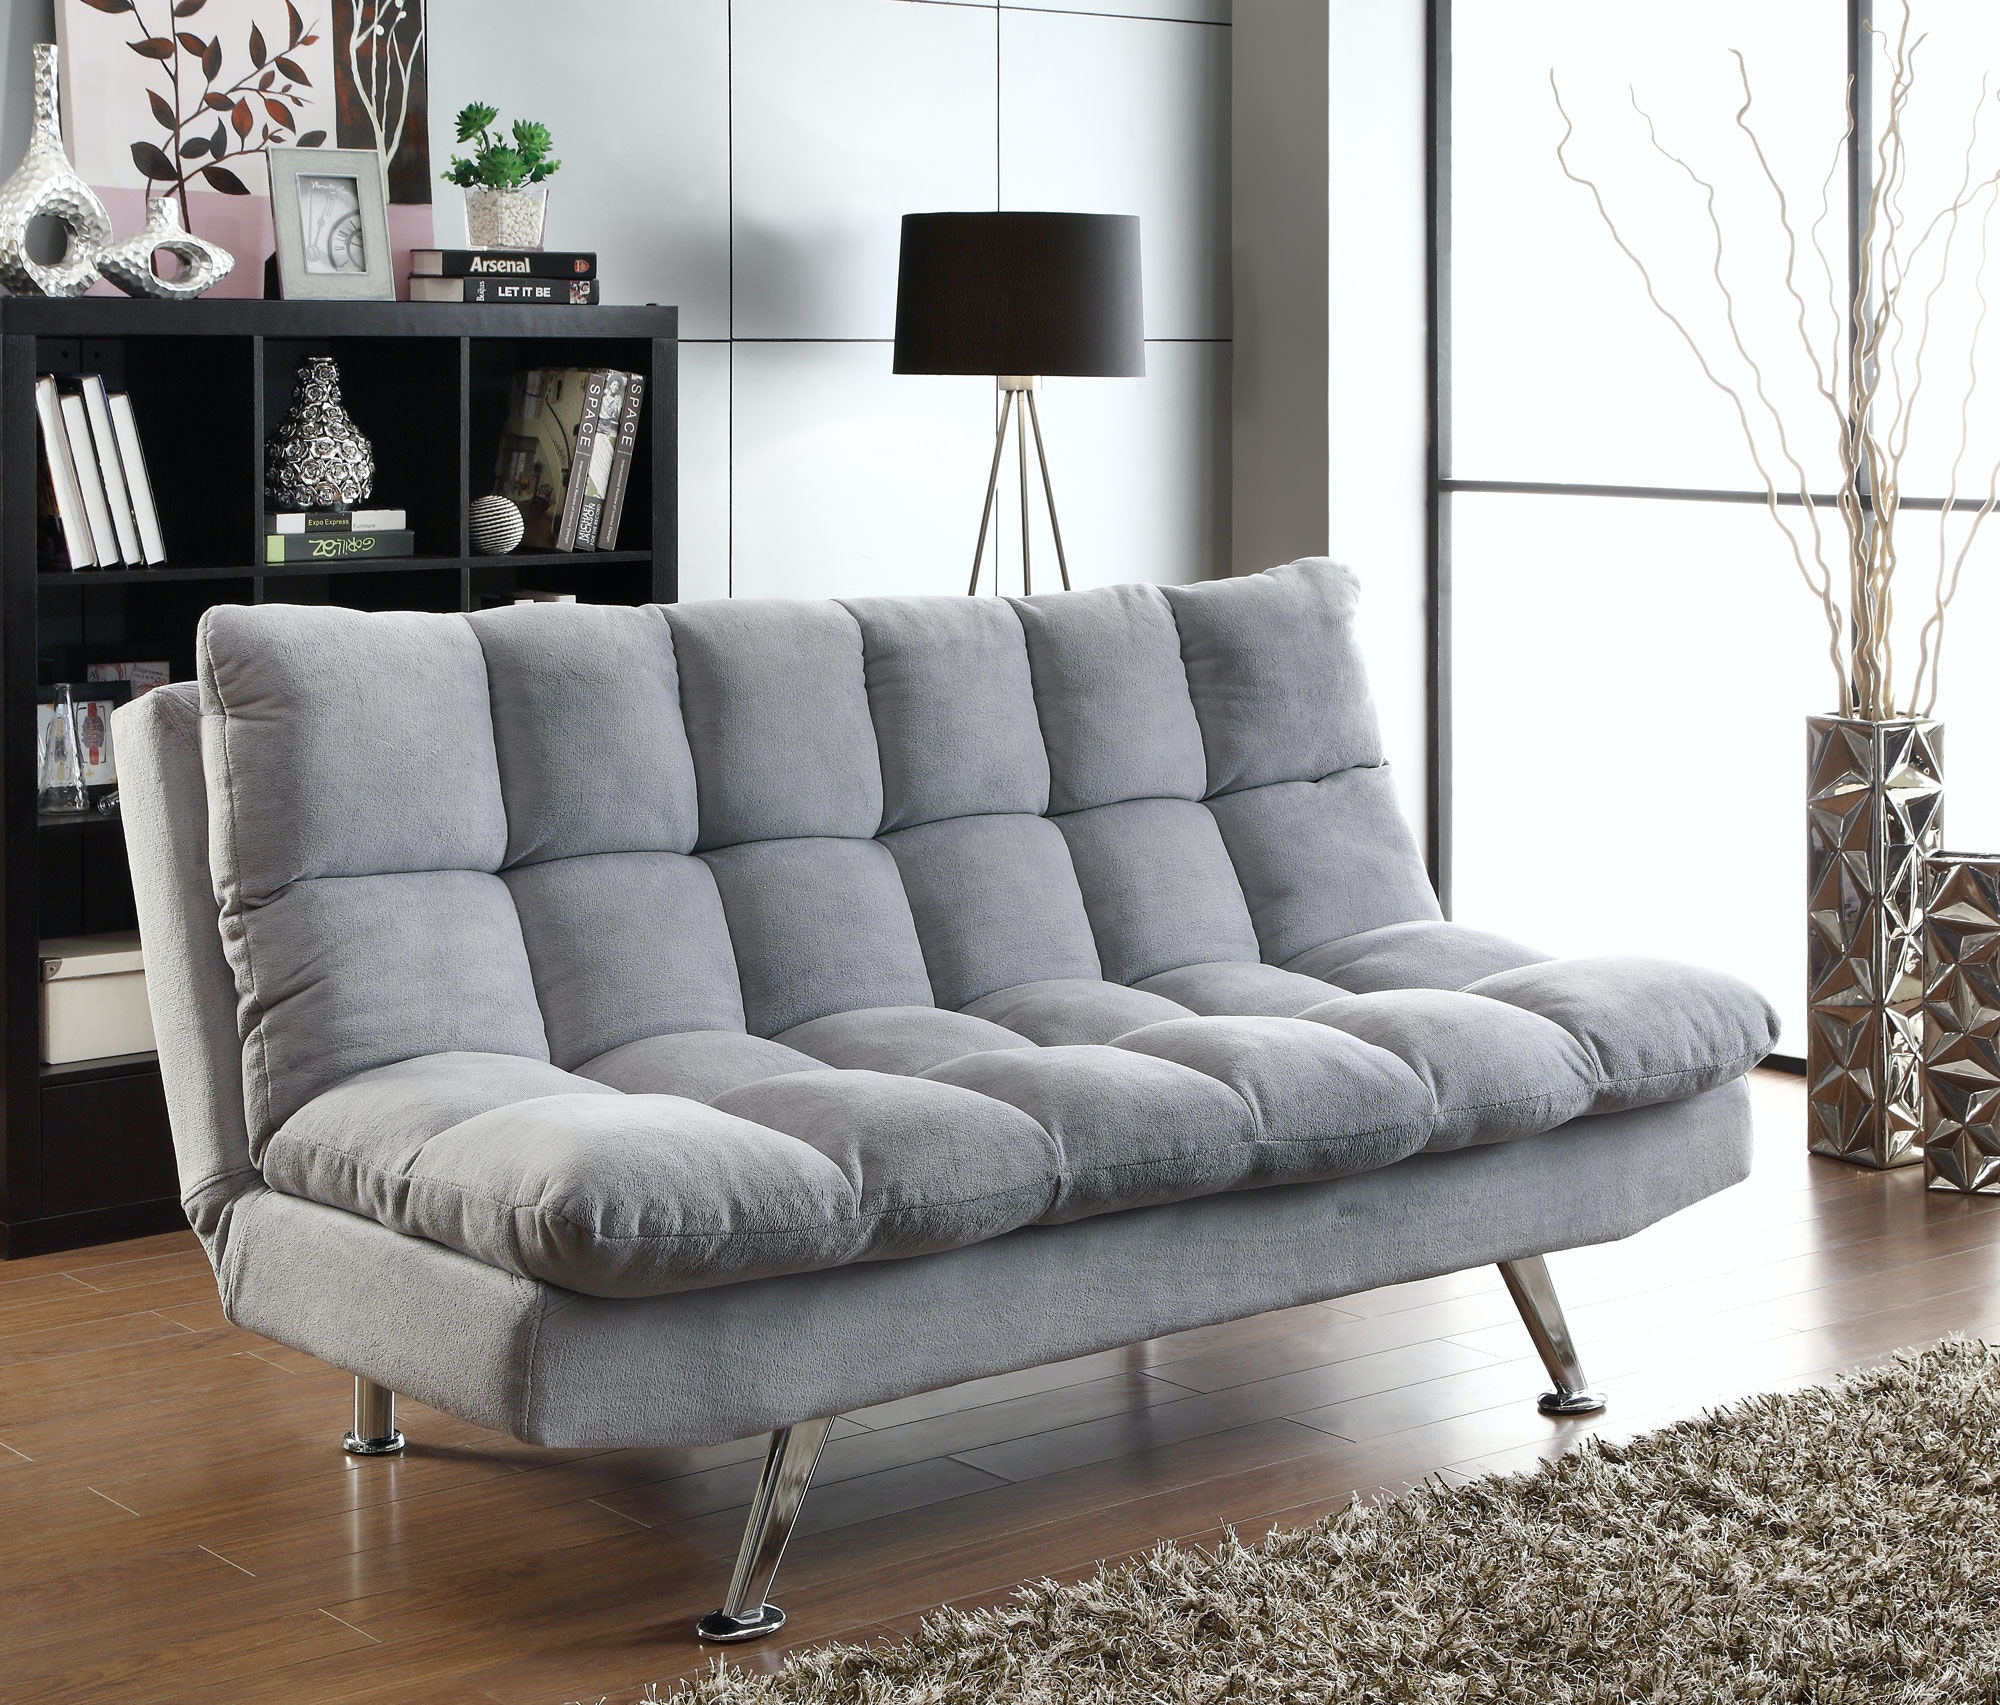 Coaster Living Room Sofa Bed 500775 At Budget Furniture